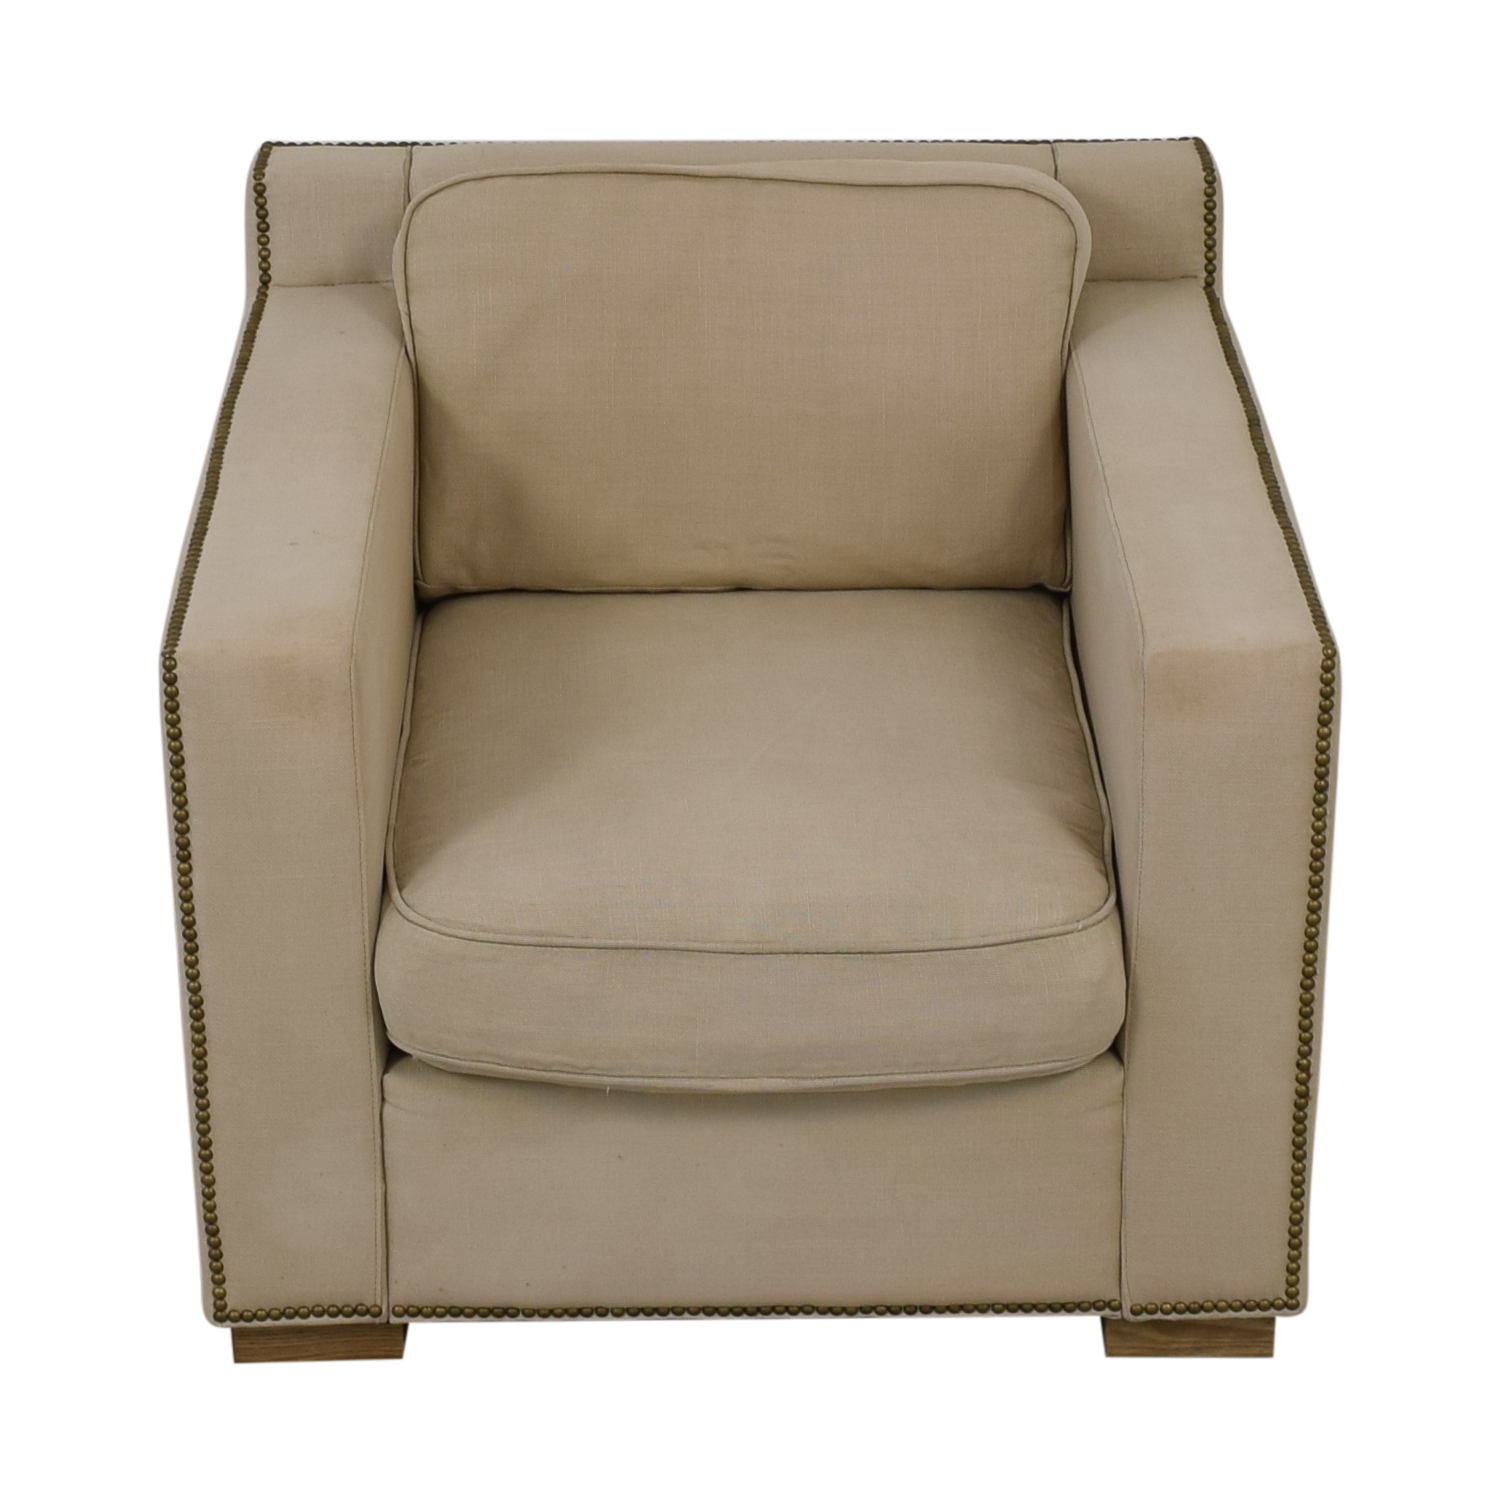 shop Restoration Hardware Restoration Hardware Collins Beige Nailhead Accent Chair online